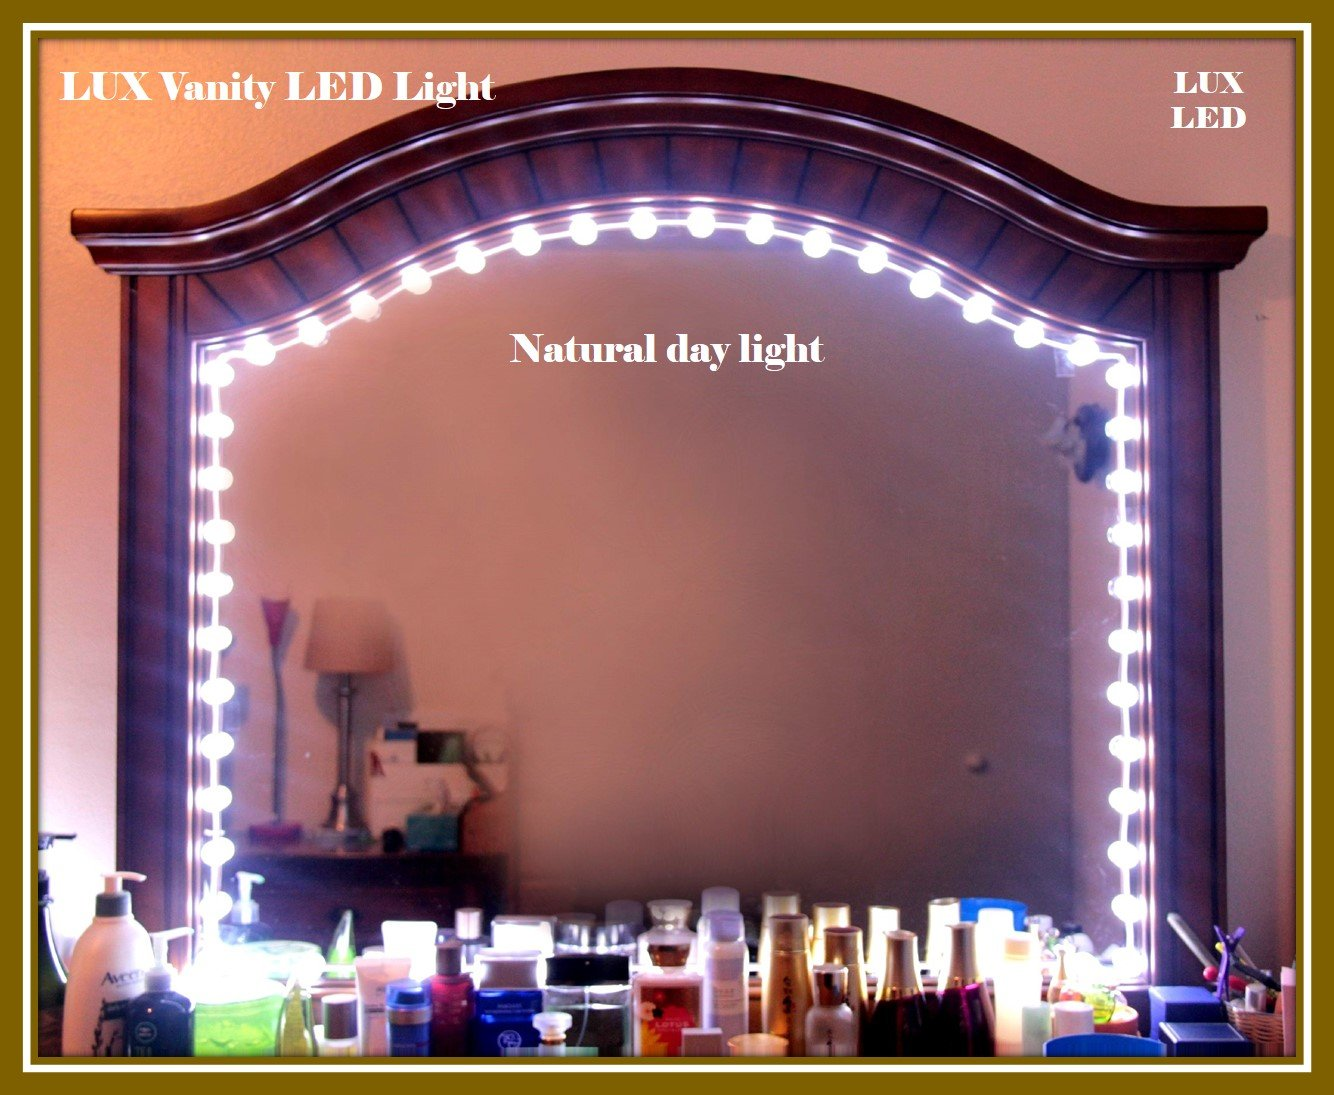 Hollywood Style Vanity Mirror with Lights Makeup Mirror Lights Anti-Glare Luxurious LED Lights for Vanity Mirror w/Touch Dimmer Switch All in One Kit Set (50pcs Bulbs - White 9.5ft)